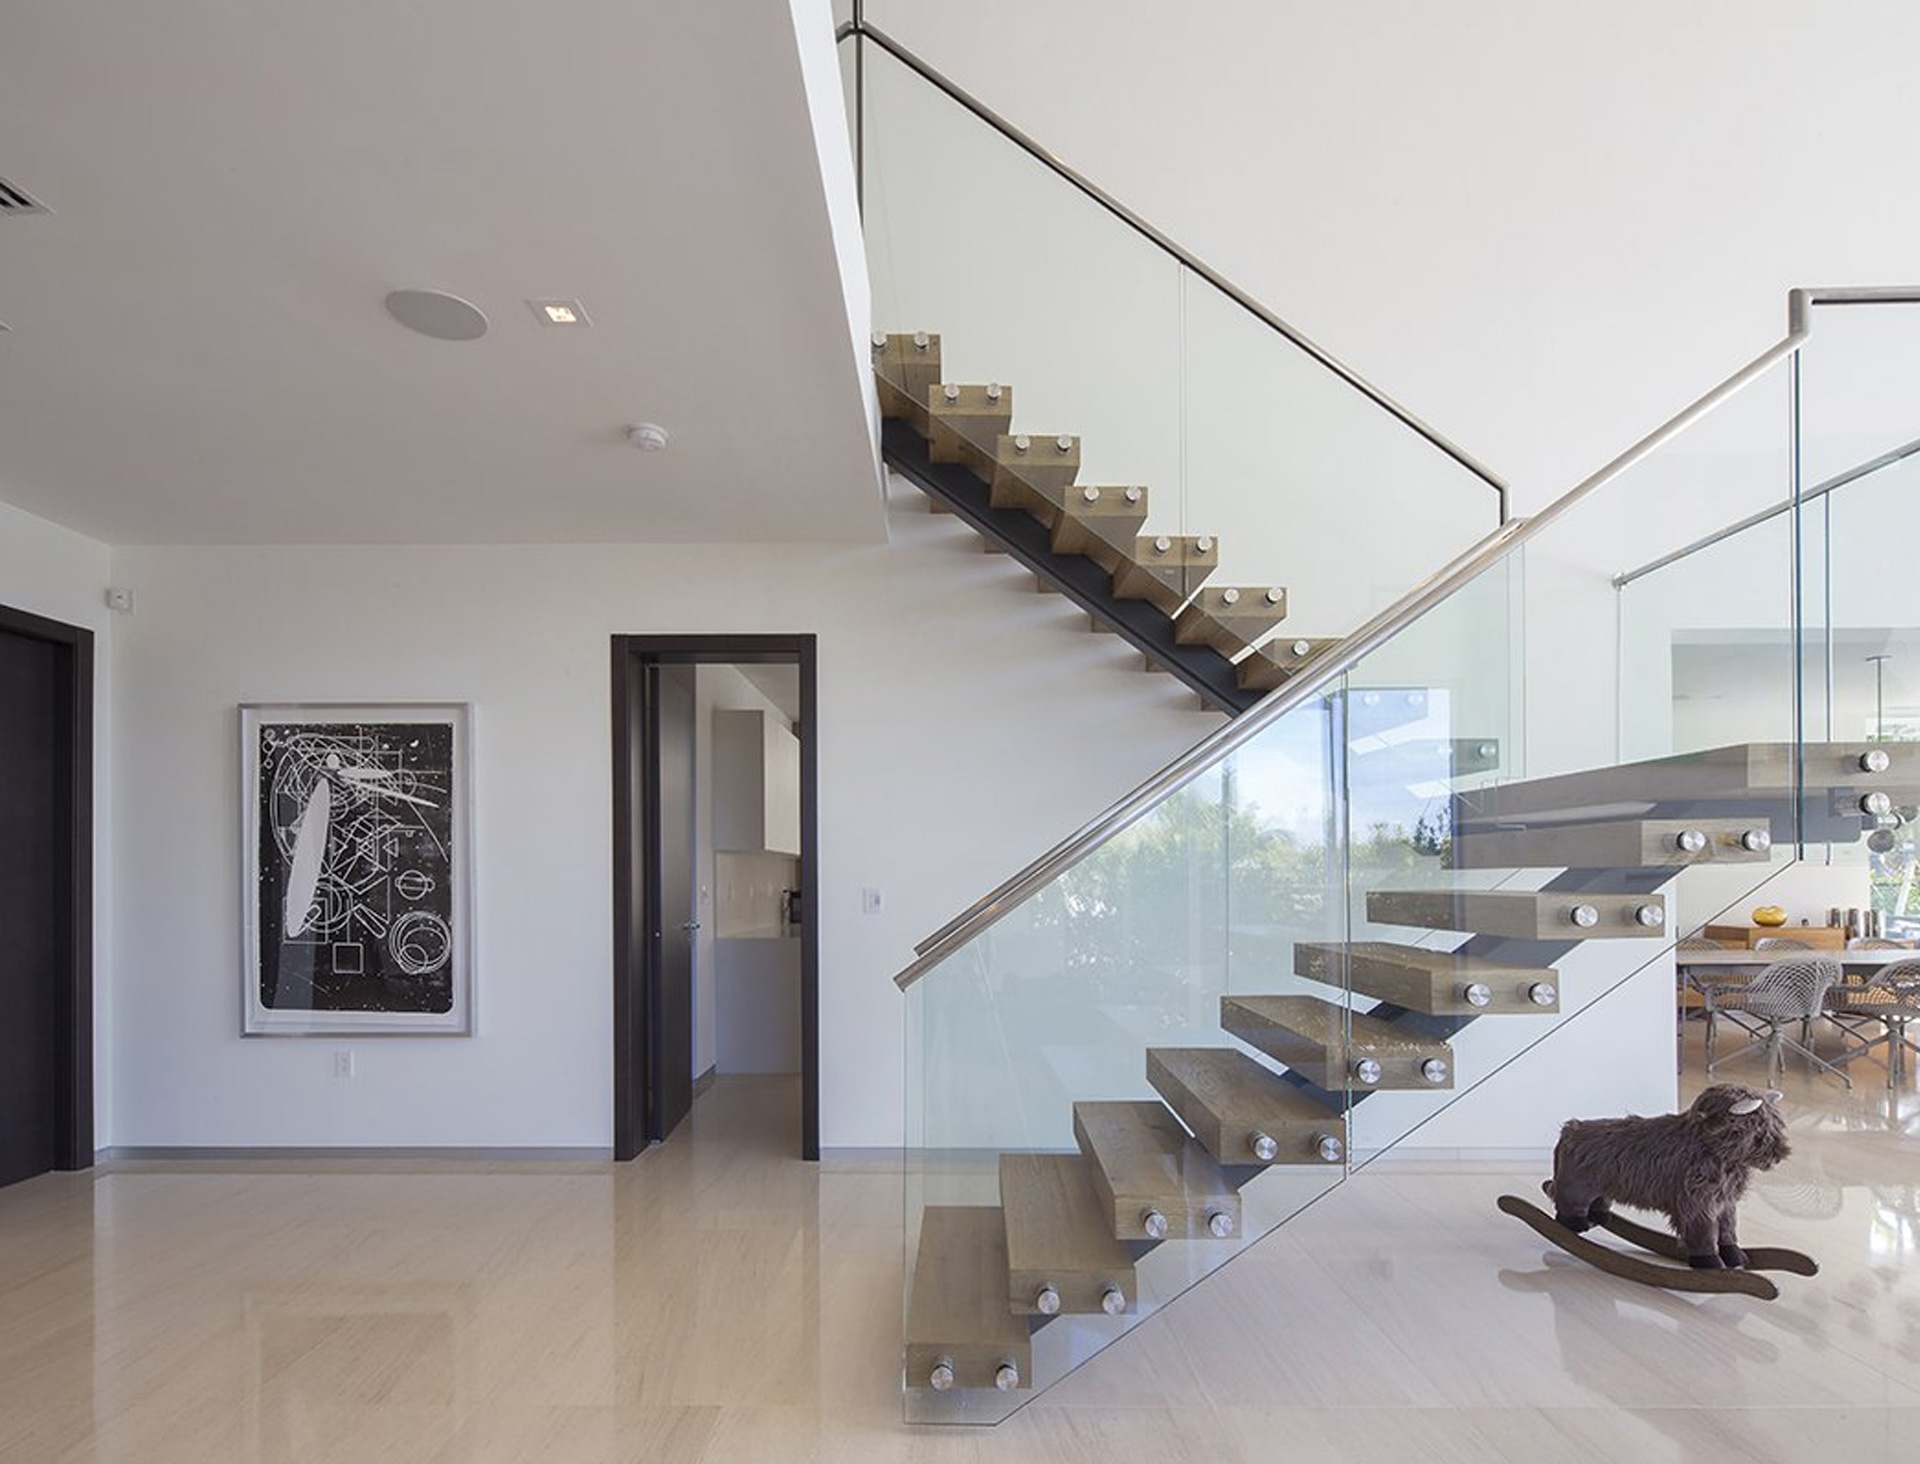 Hall View Interior Design project in 410 Golden Beach Drive, Florida